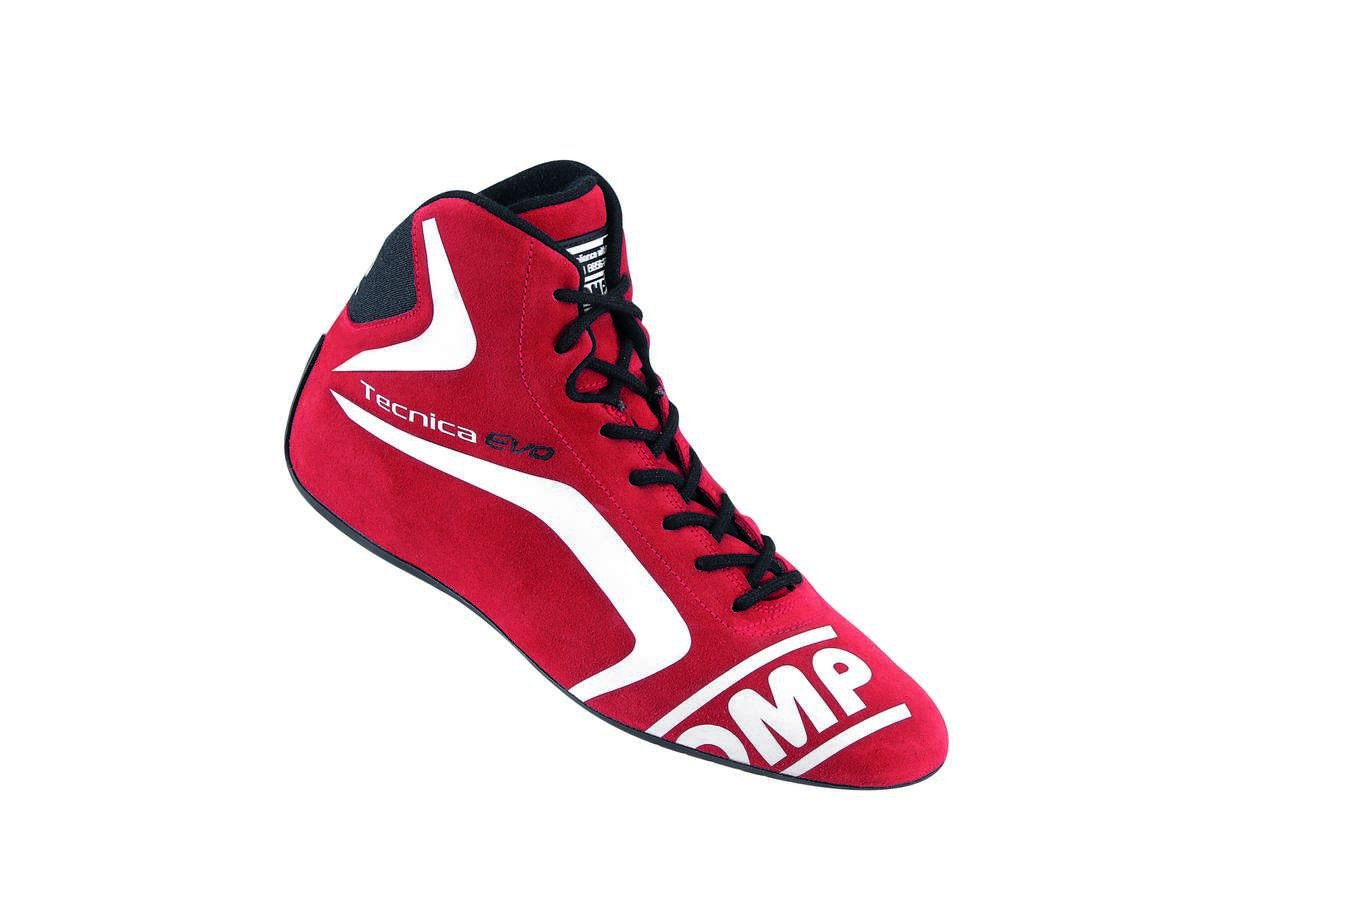 IC//80306146 Tecnica Evo Shoes, Red, Size 46 OMP